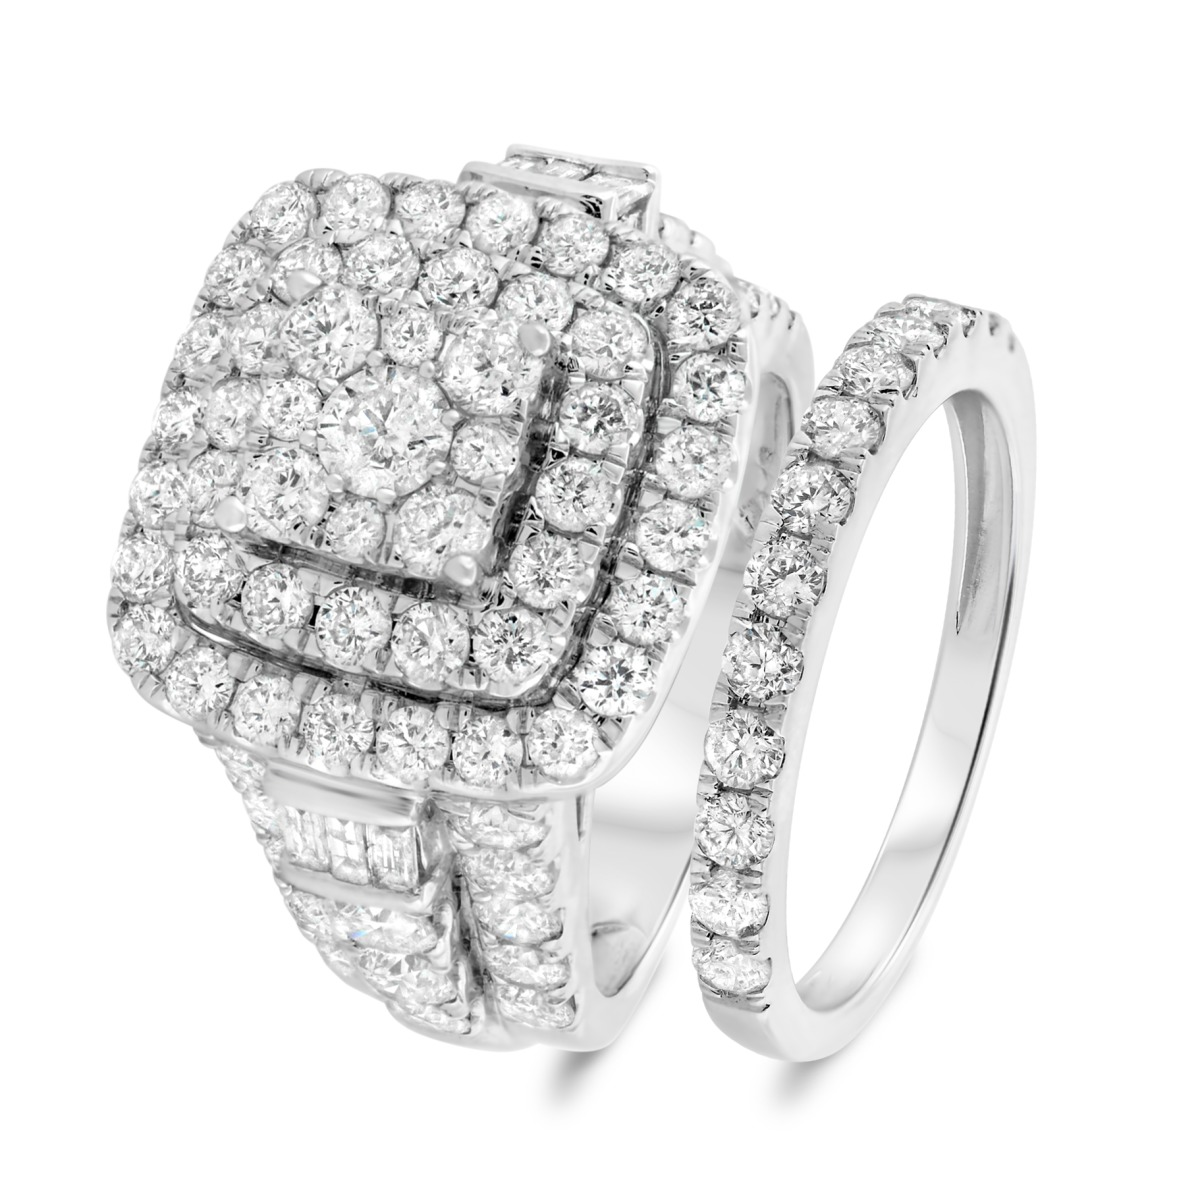 4 3/8 CT. T.W. Diamond Matching Bridal Ring Set 14K White Gold